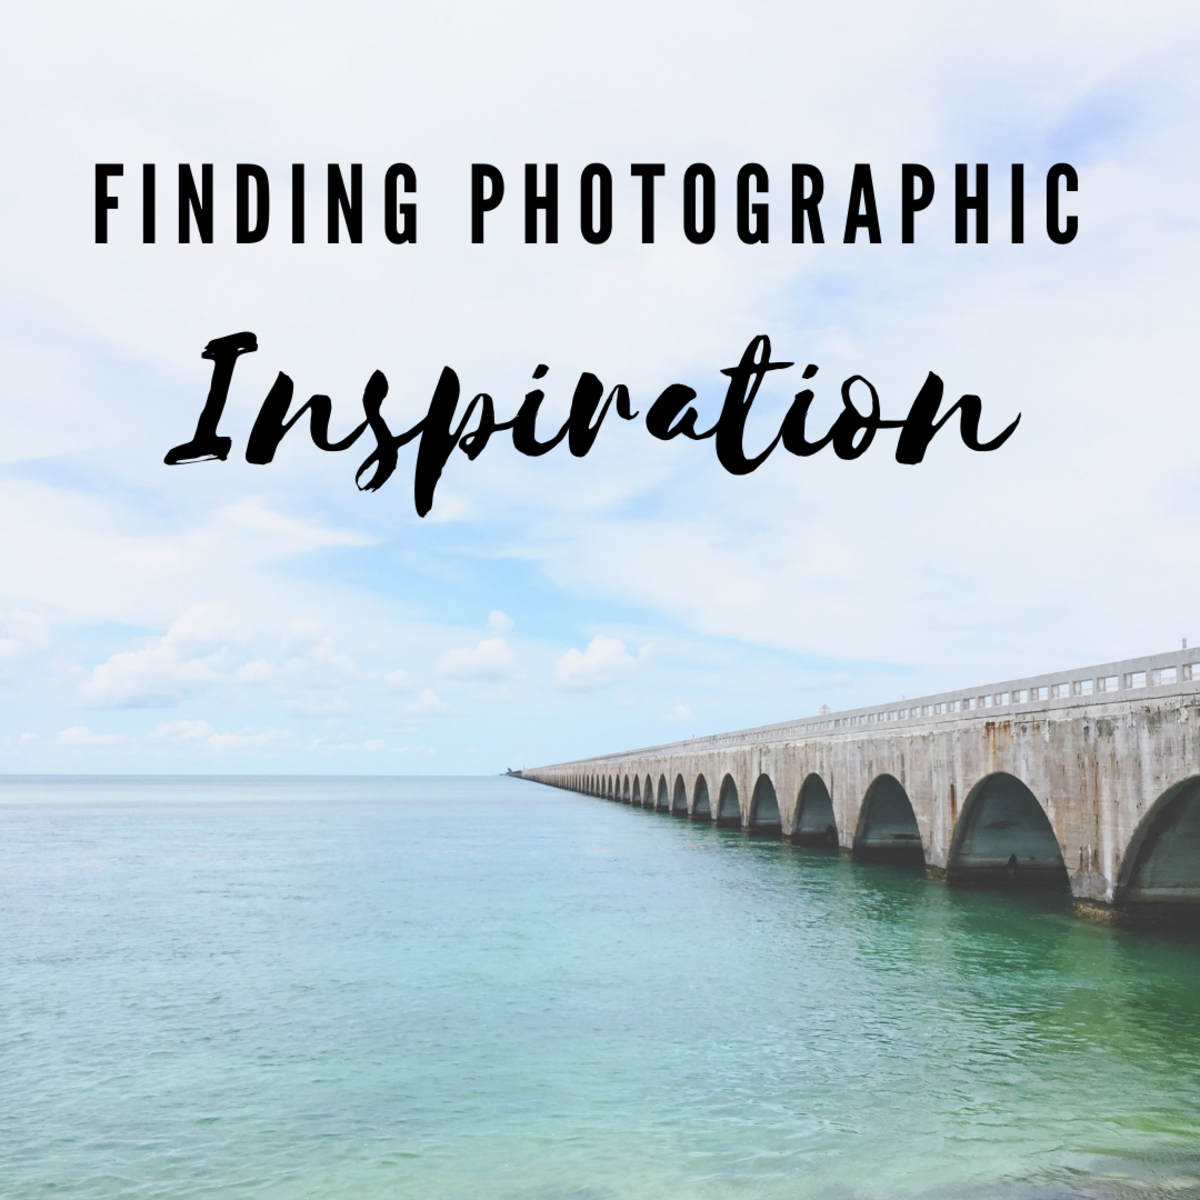 You can look to other photographers' work as inspiration as long as you follow a few important guidelines.